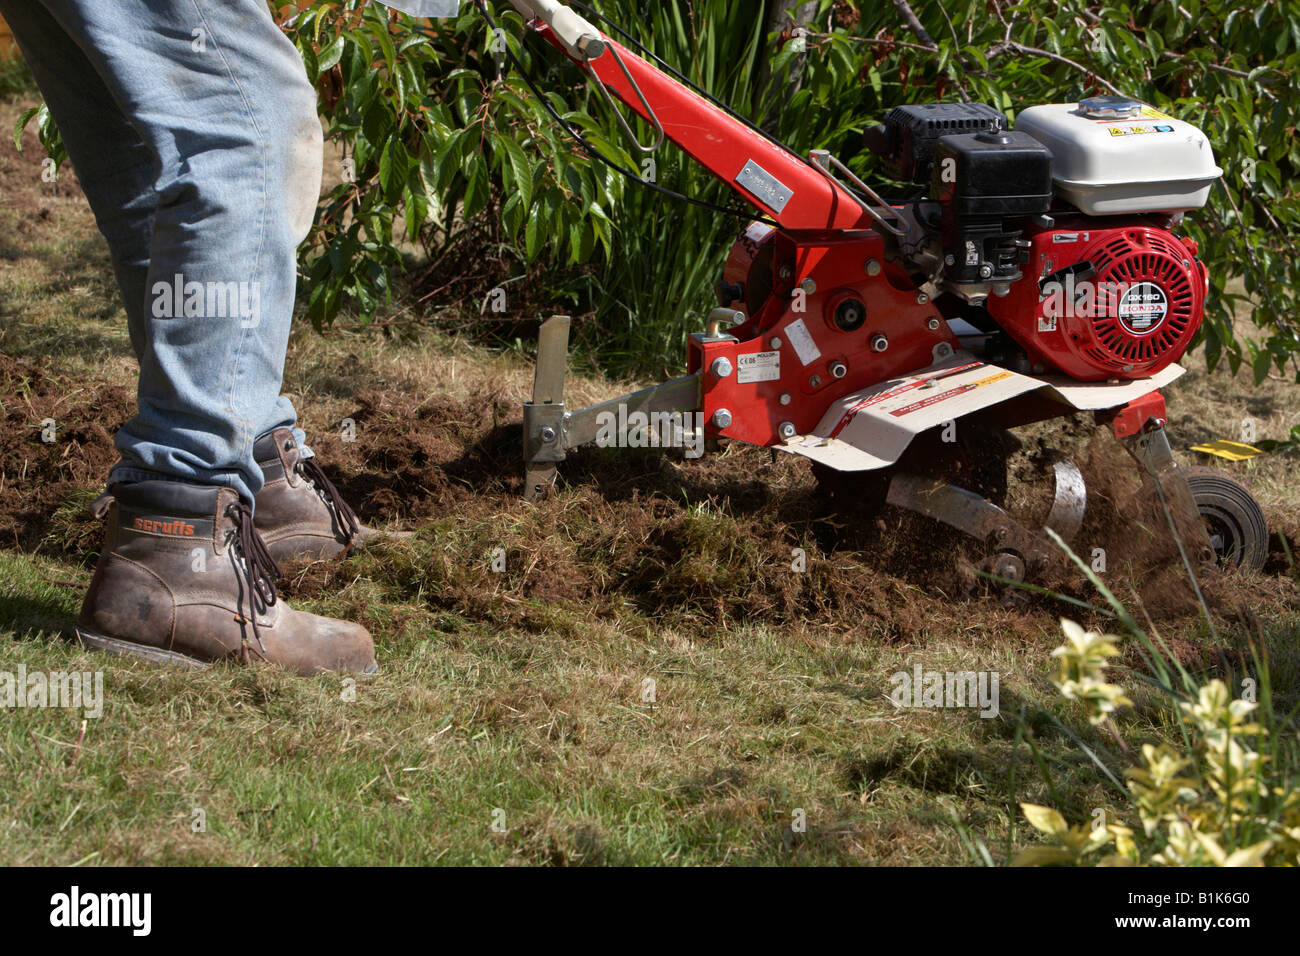 man wearing jeans and safety boots operates petrol driven garden ...